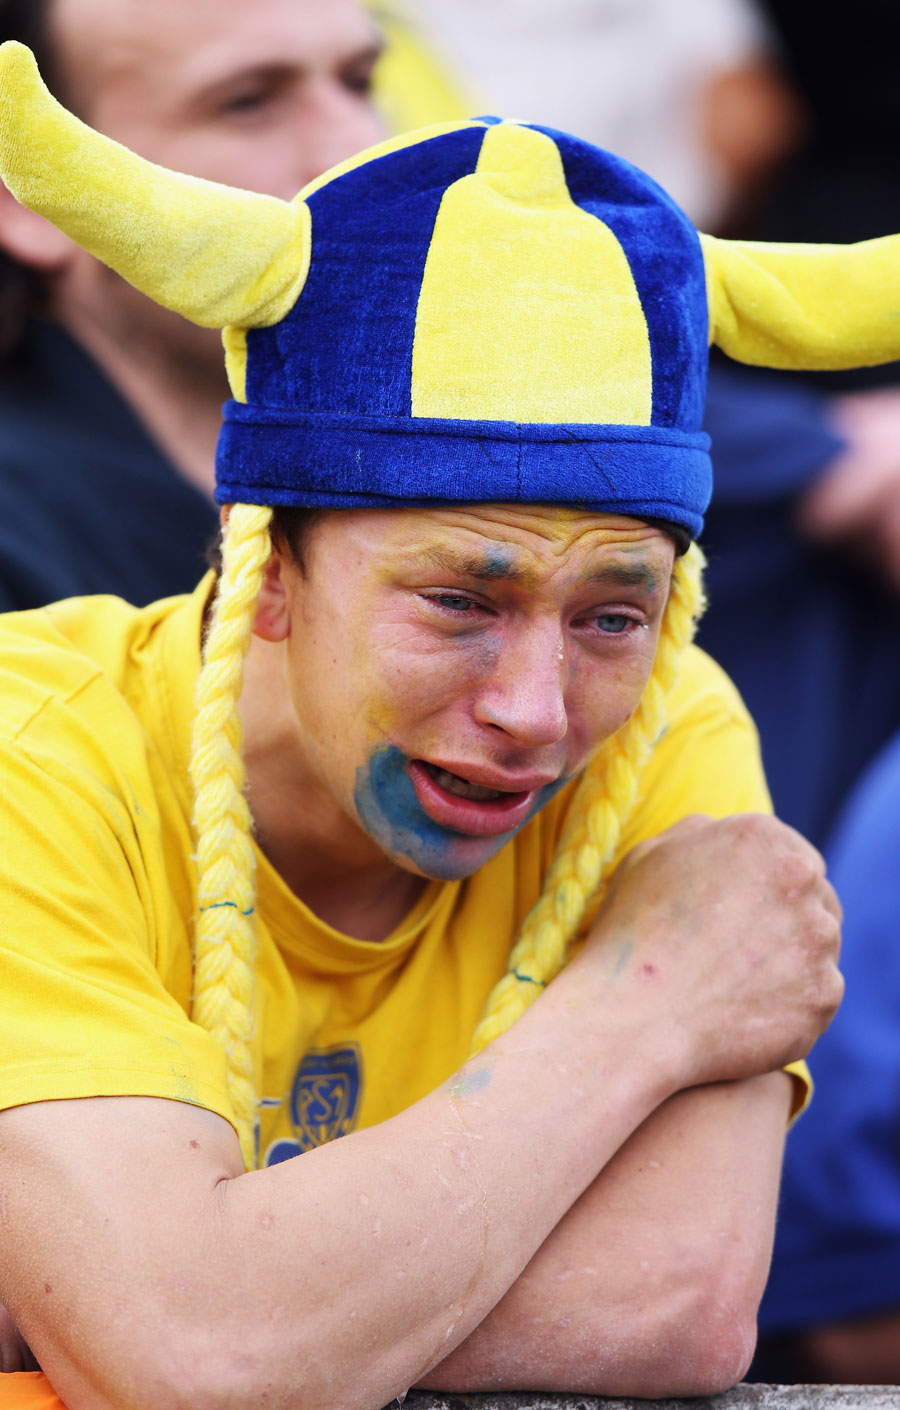 A Clermont Auvergne fan reflects on his side's defeat